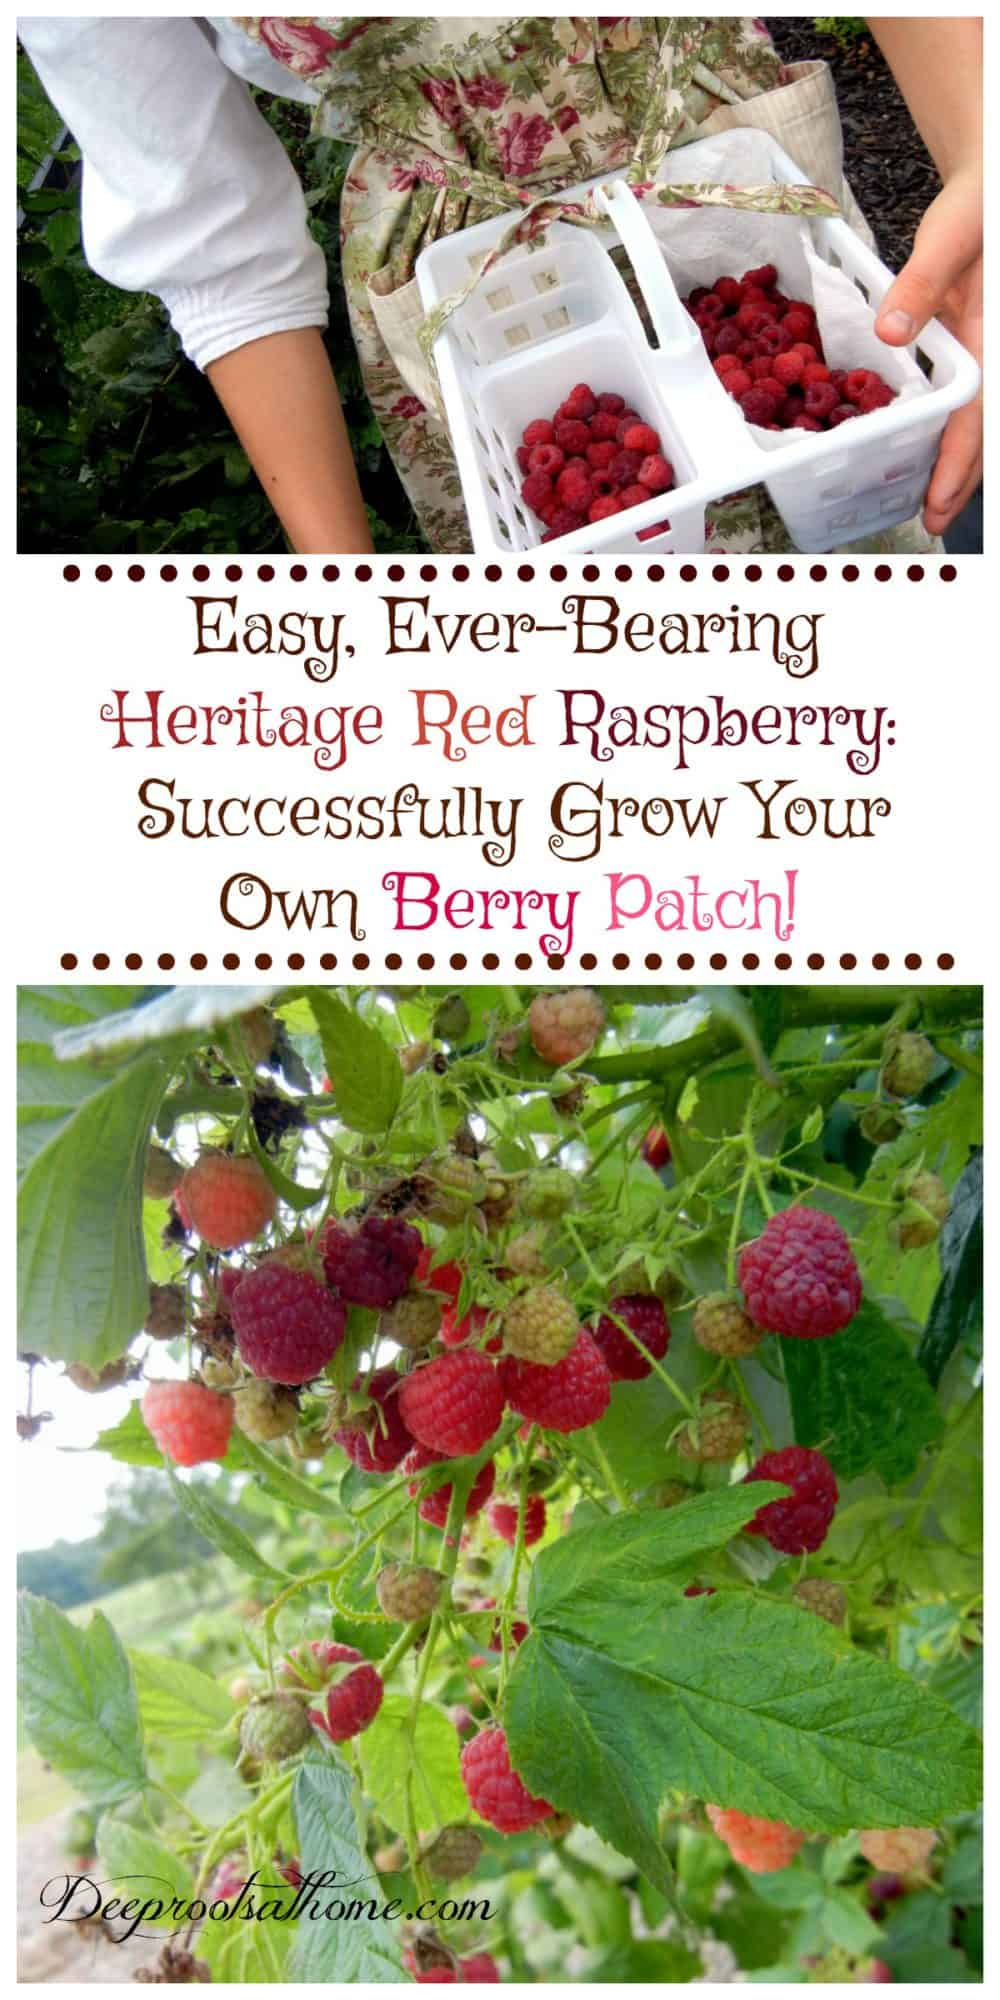 Easy Ever-Bearing Heritage Raspberry: Successfully Grow Your Own Berry Patch. Pinterest image